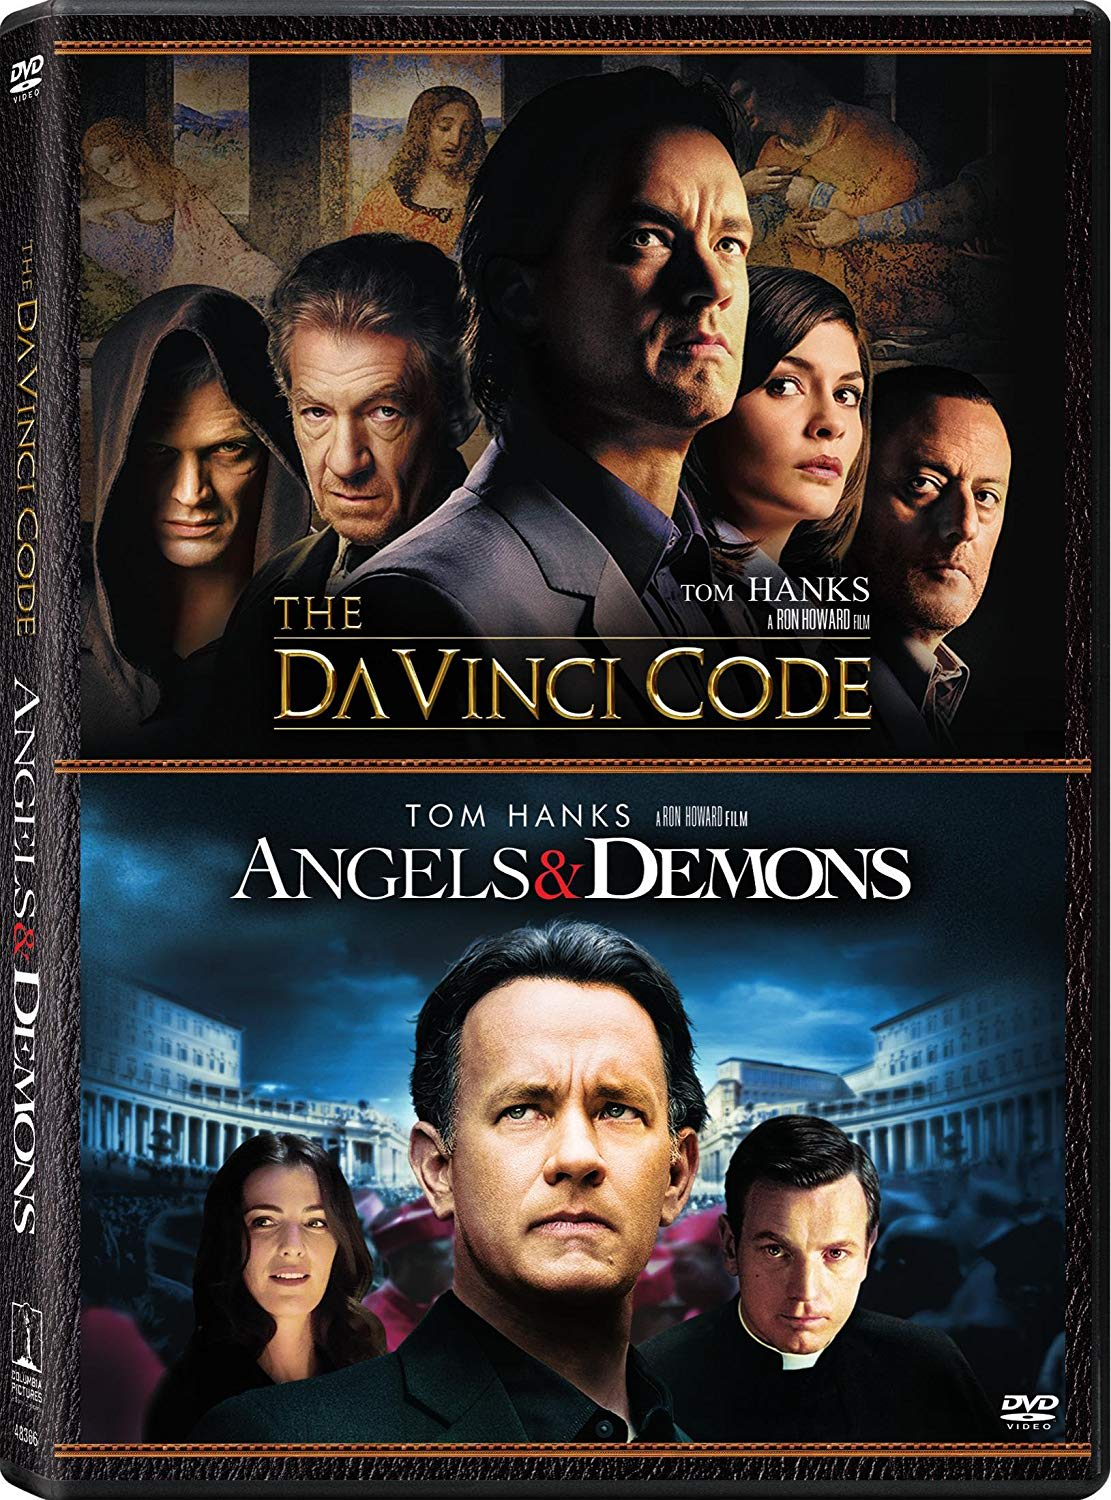 Angels & Demons / Da Vinci Code [DVD]